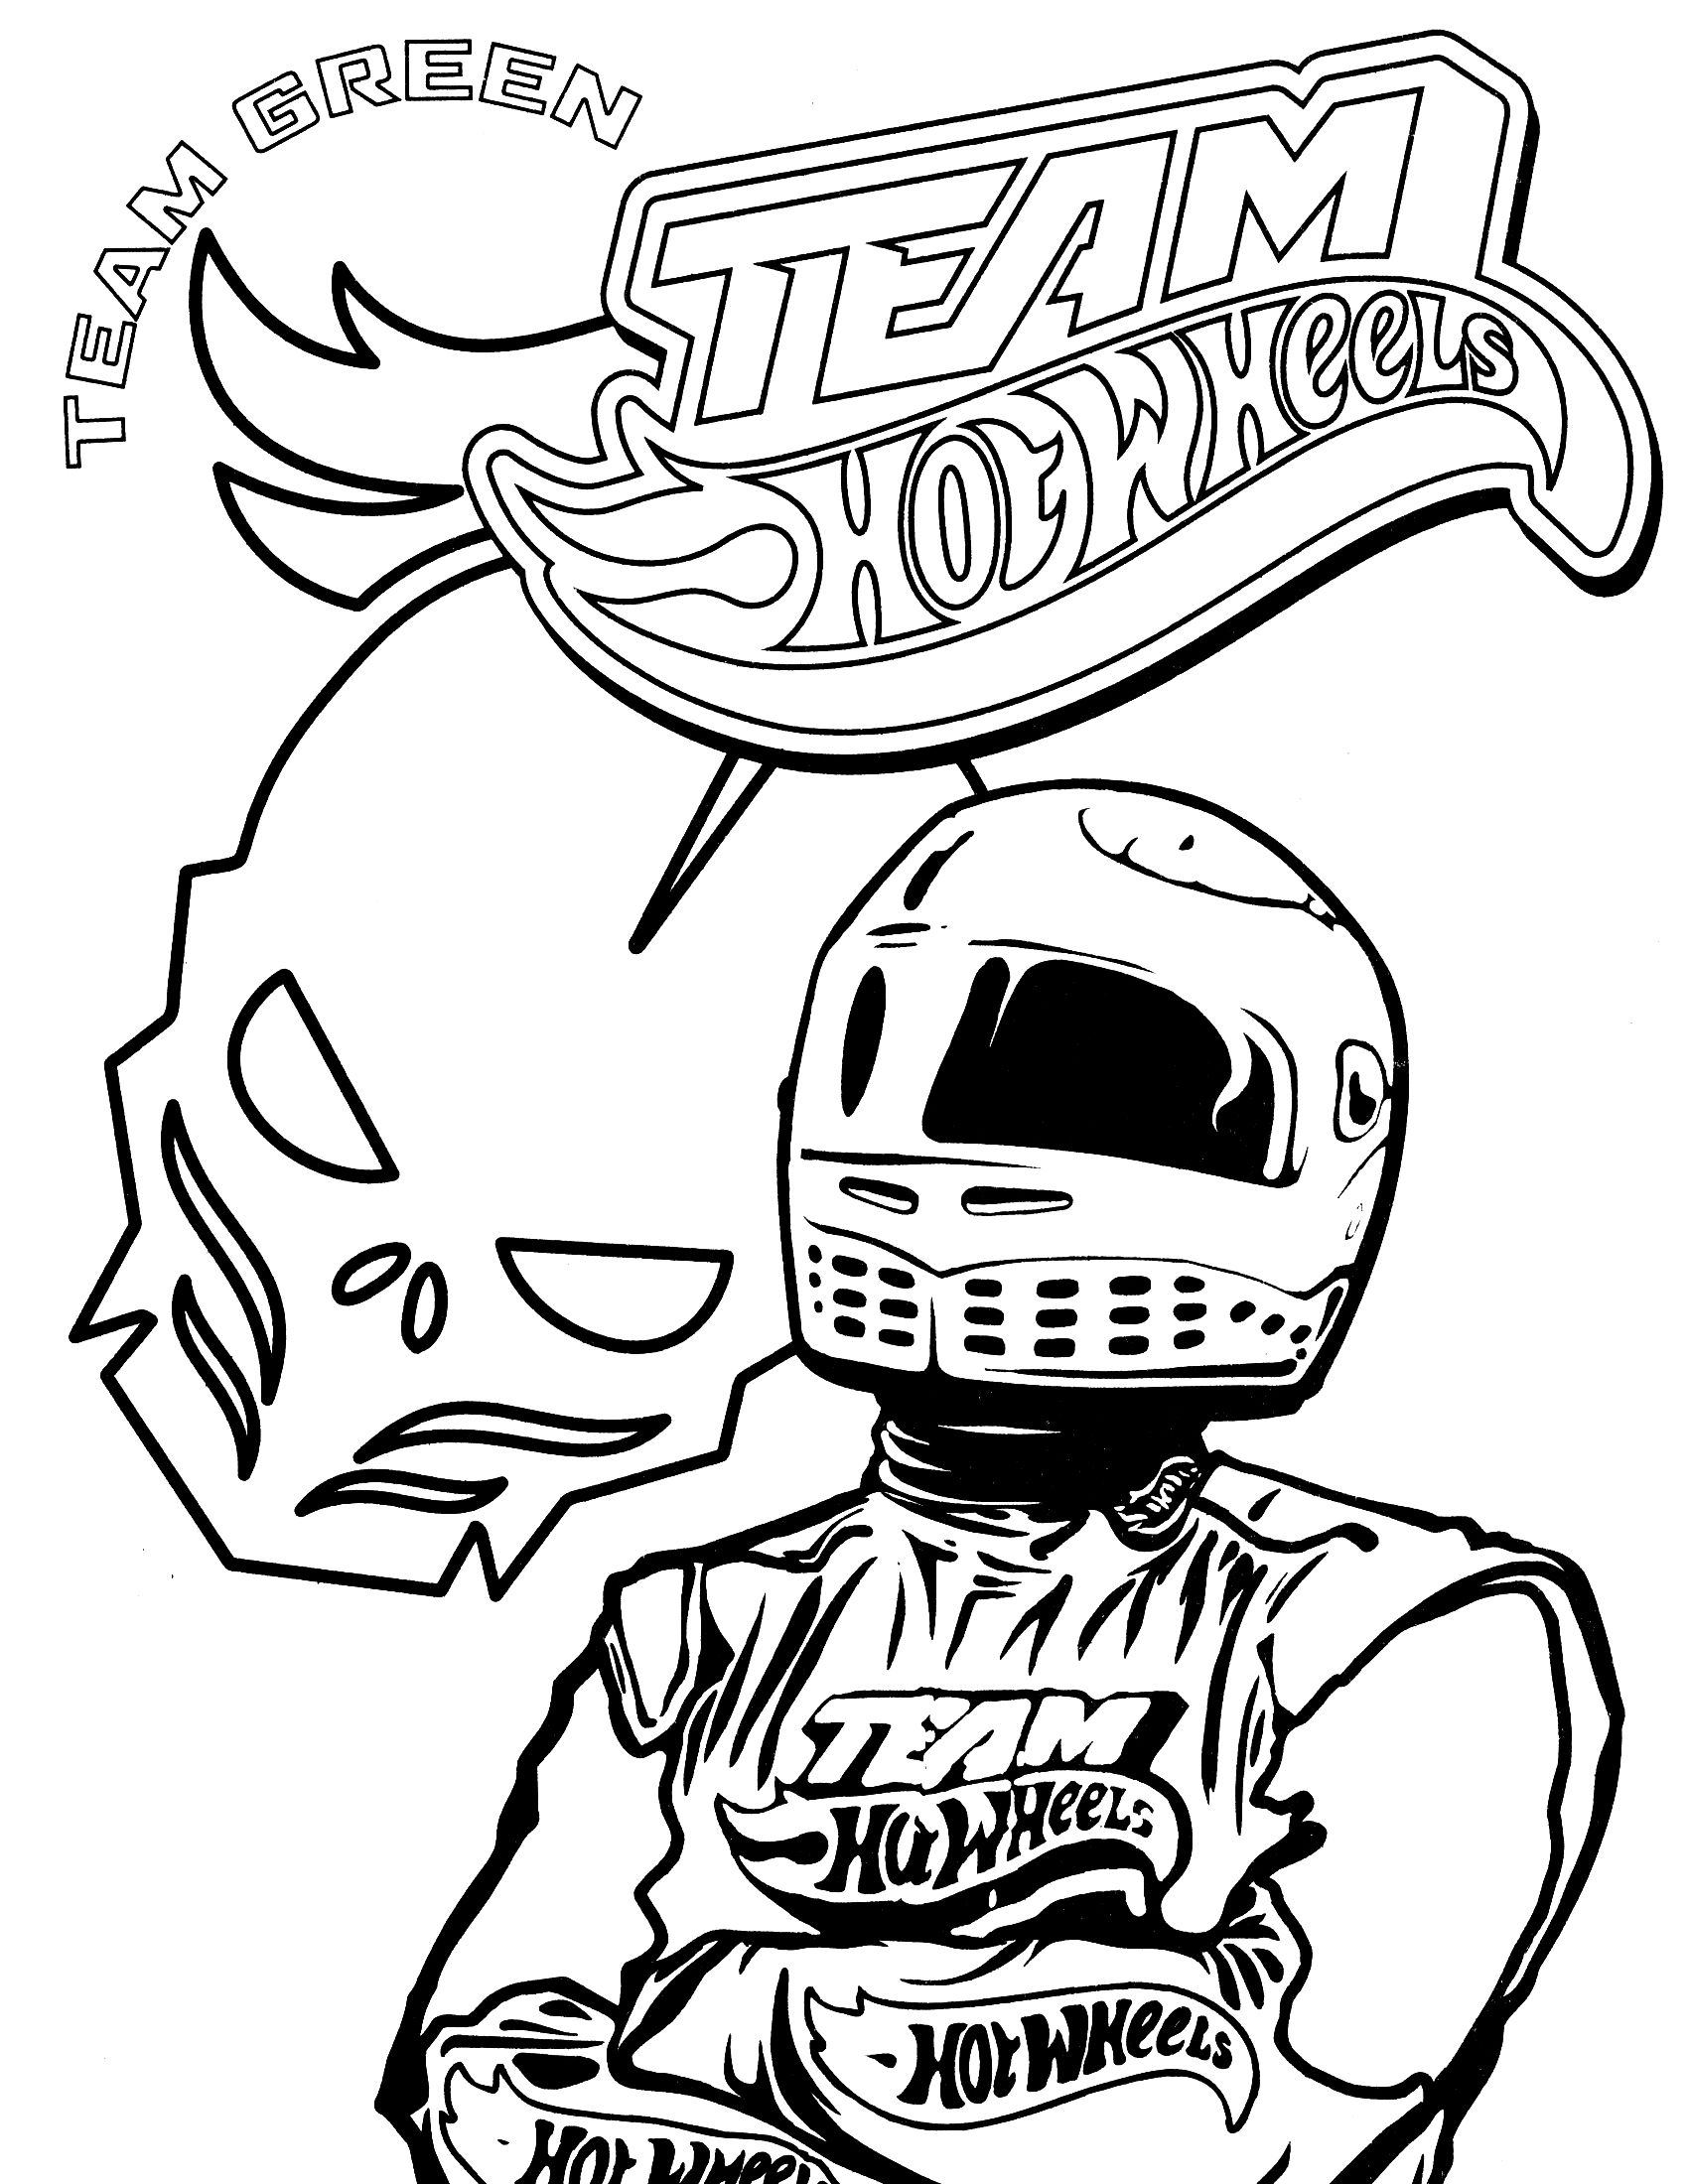 hot wheels coloring pages games 2 - Hot Wheels Coloring Pages